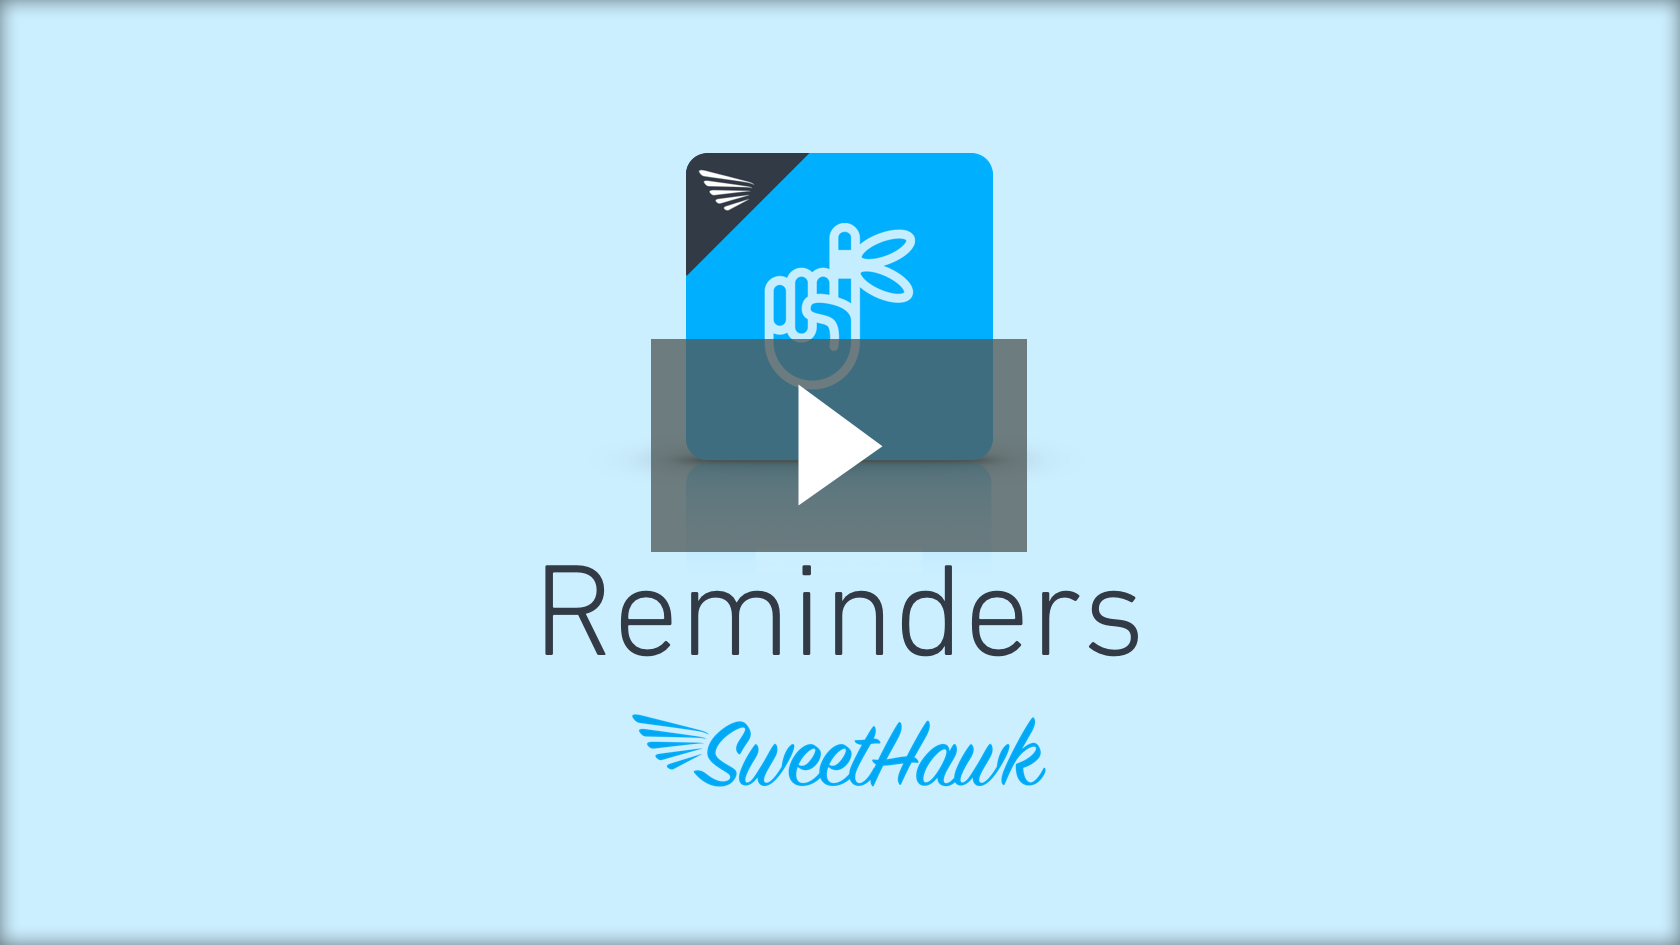 Watch the Reminders app video